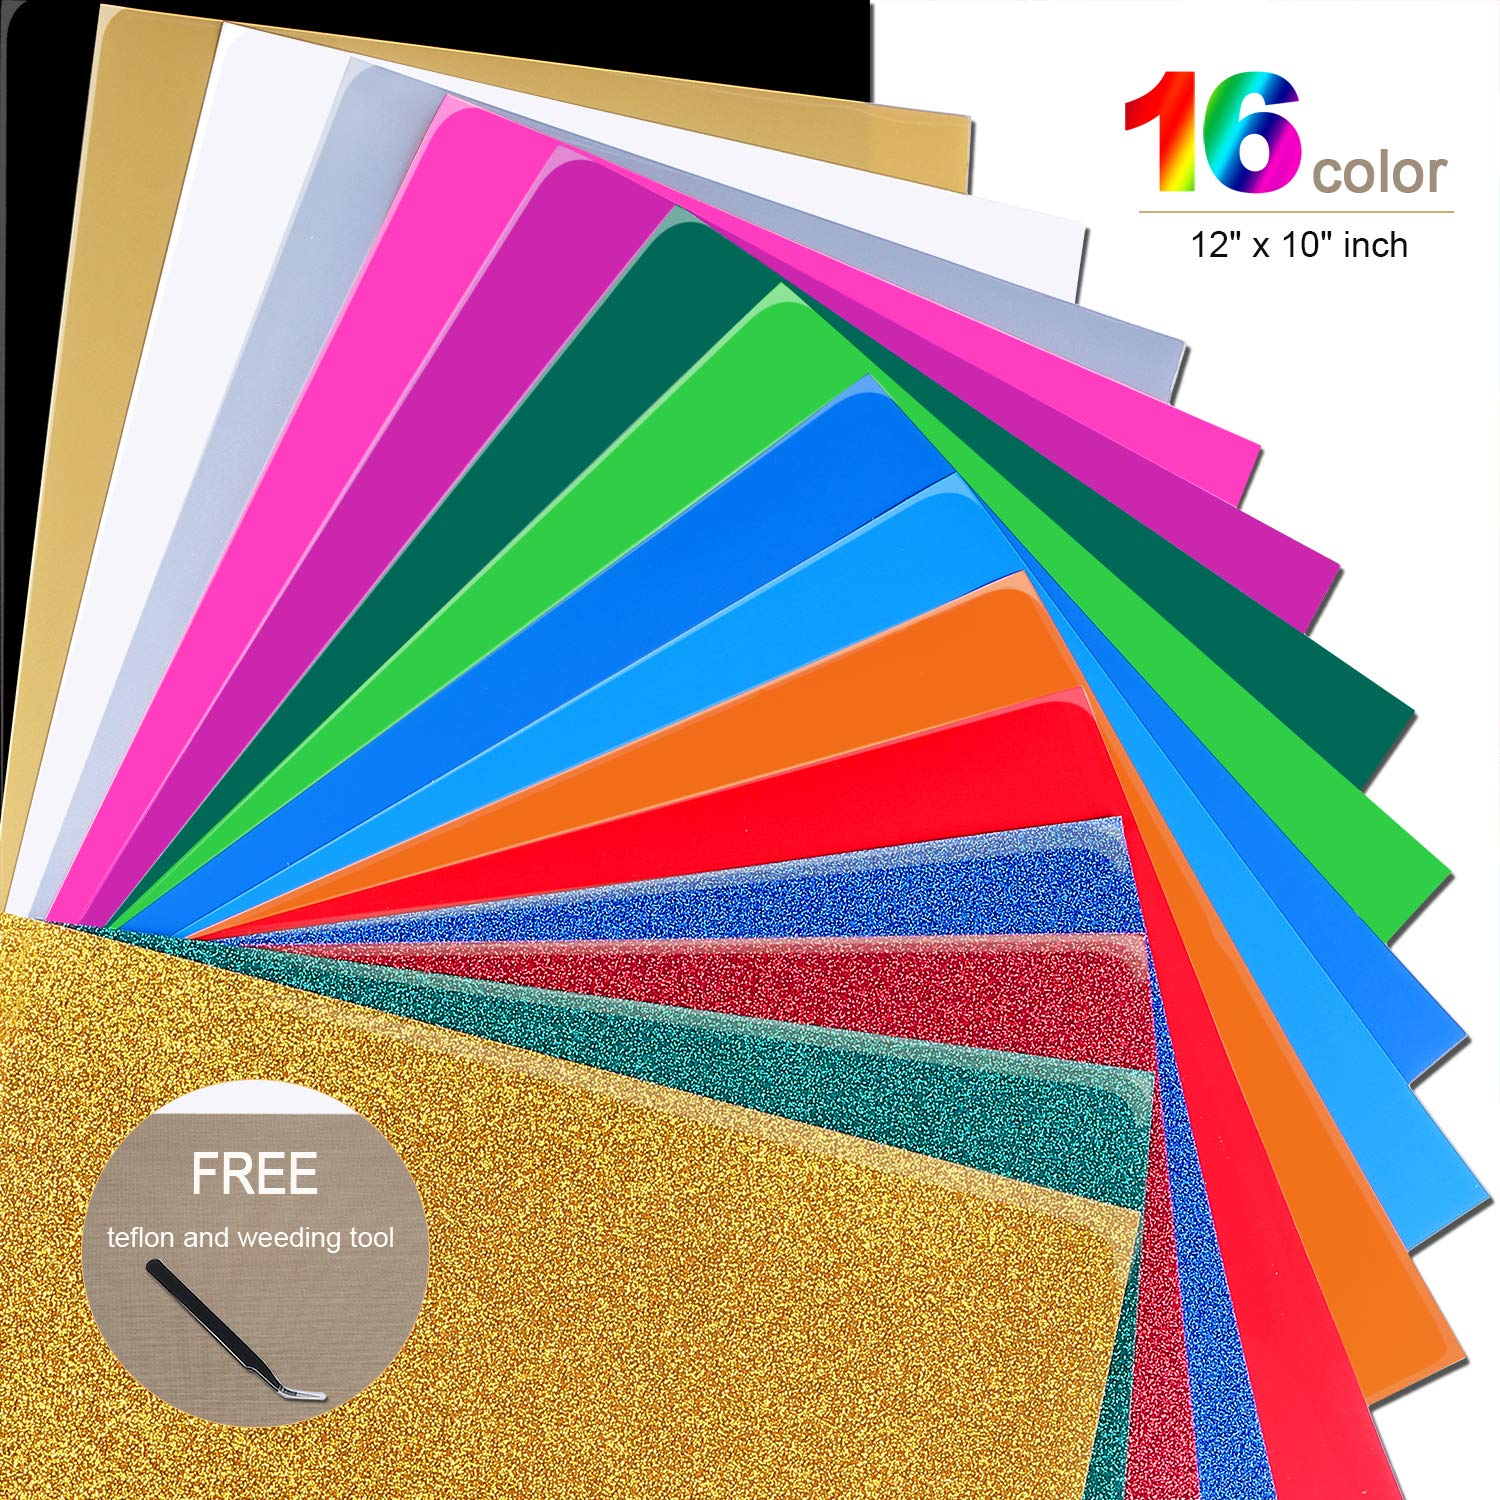 Mashup Glitter 12''x 10'' Sheets Heat Transfer Vinyl Bundle 16 Assorted Colors Works with Silhouette Cameo,Cricut or Heat Press Machine,Iron-On HTV for T-Shirts Hats-Teflon & Weeding Tool Included by BaBaaa